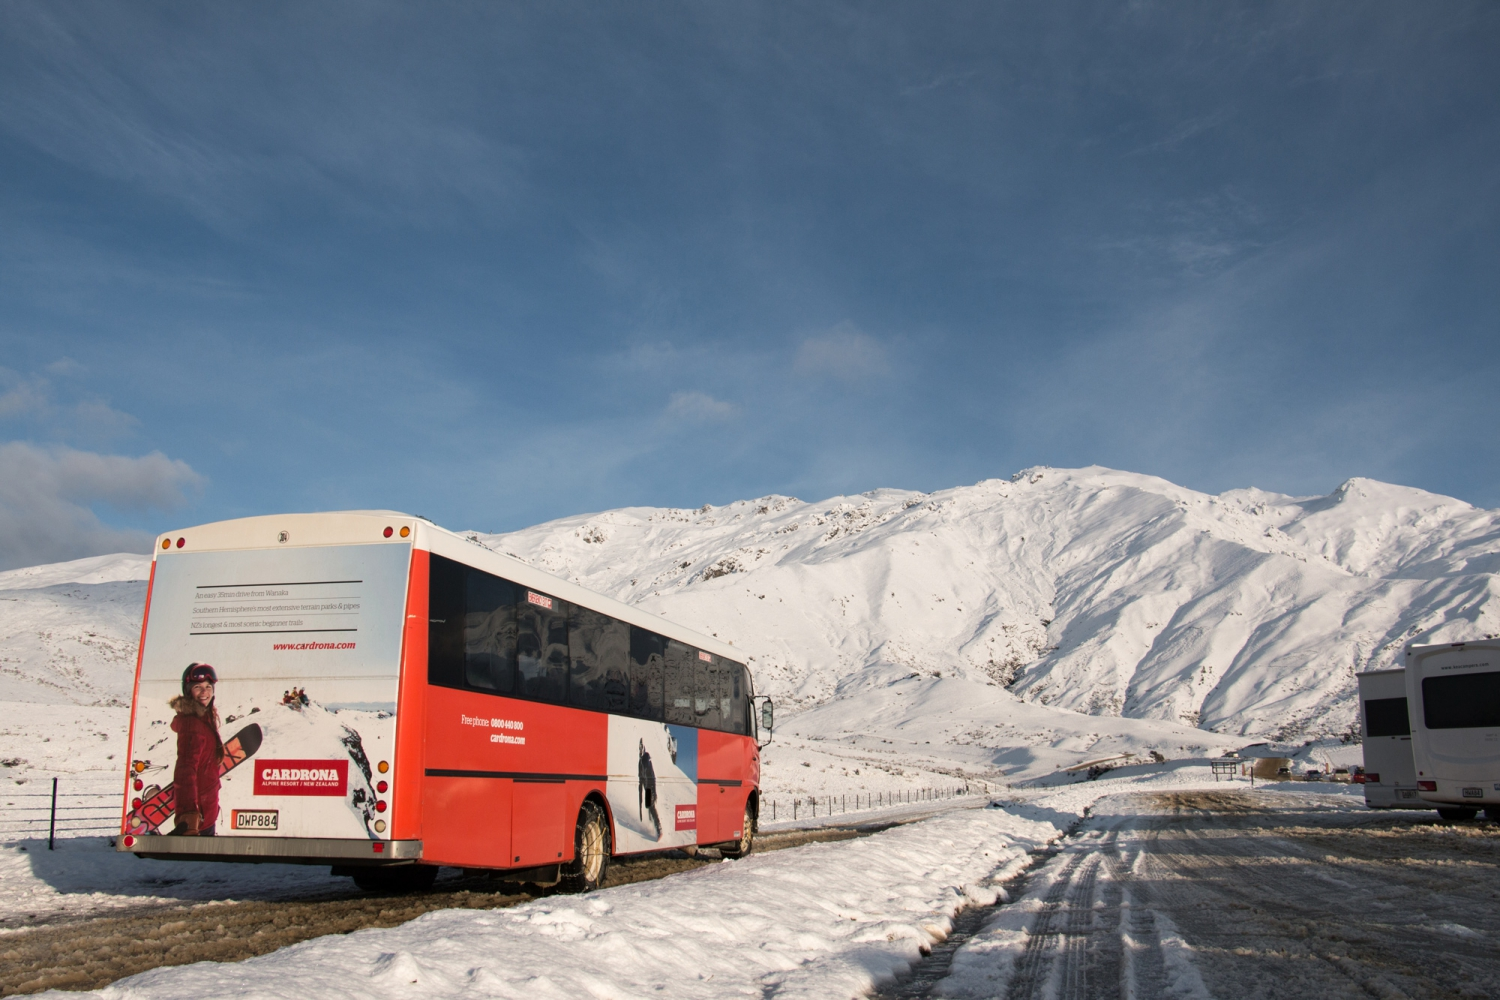 Cardrona Resort Ski Transport